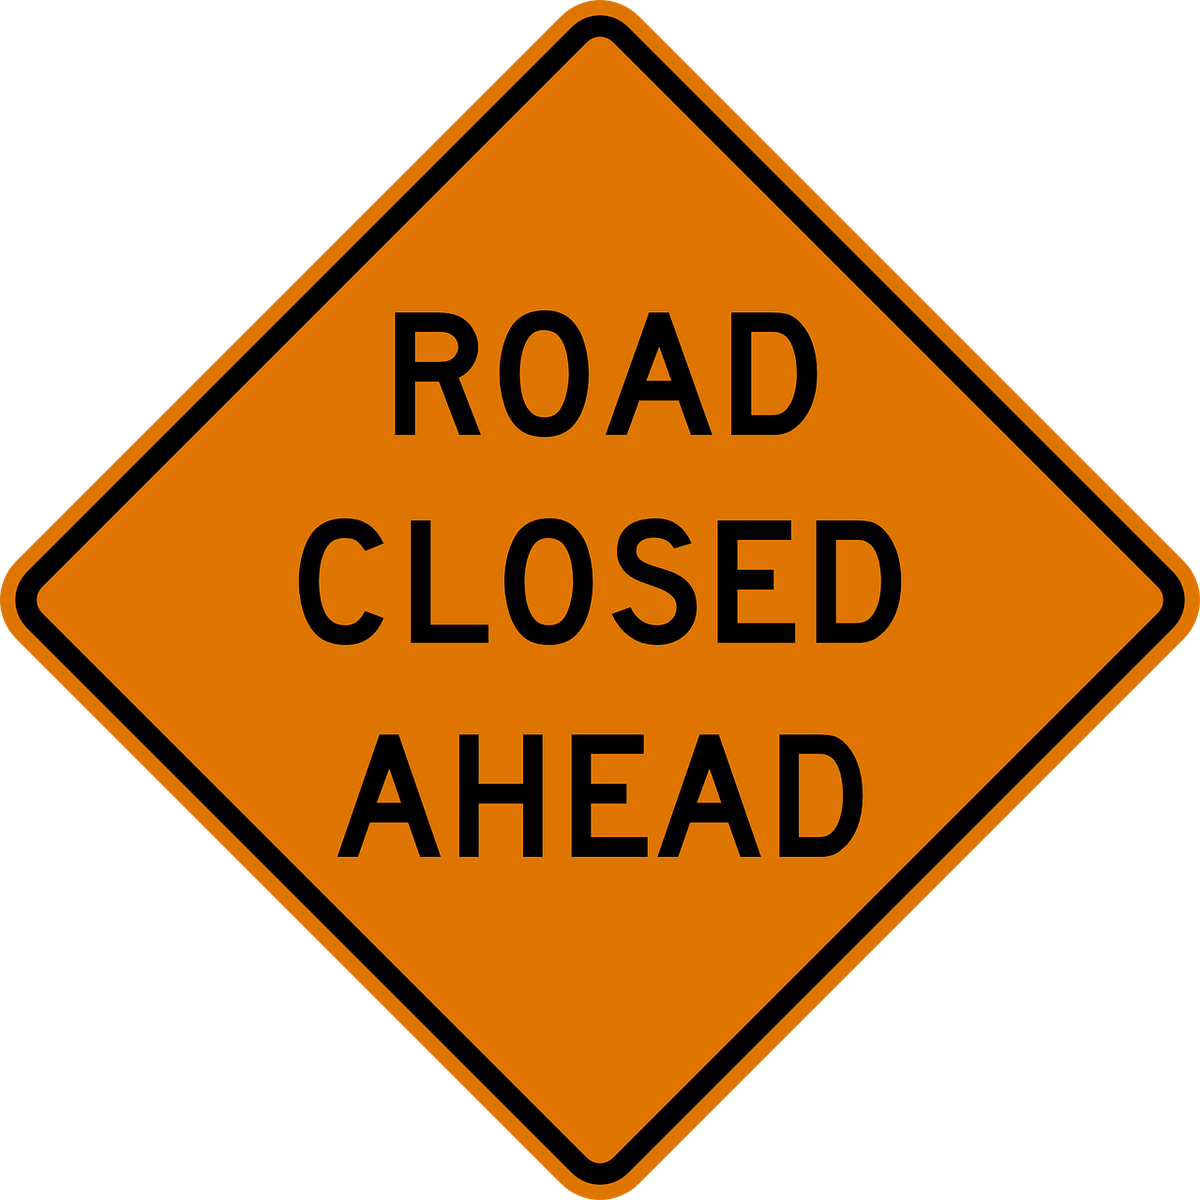 A section of Fuller Road will be closed at the Mills Civic Parkway intersection from Mon., Sept. 28, at 6:30 p.m. to Tues., Sept. 29, at 5:30 p.m. for street patching.